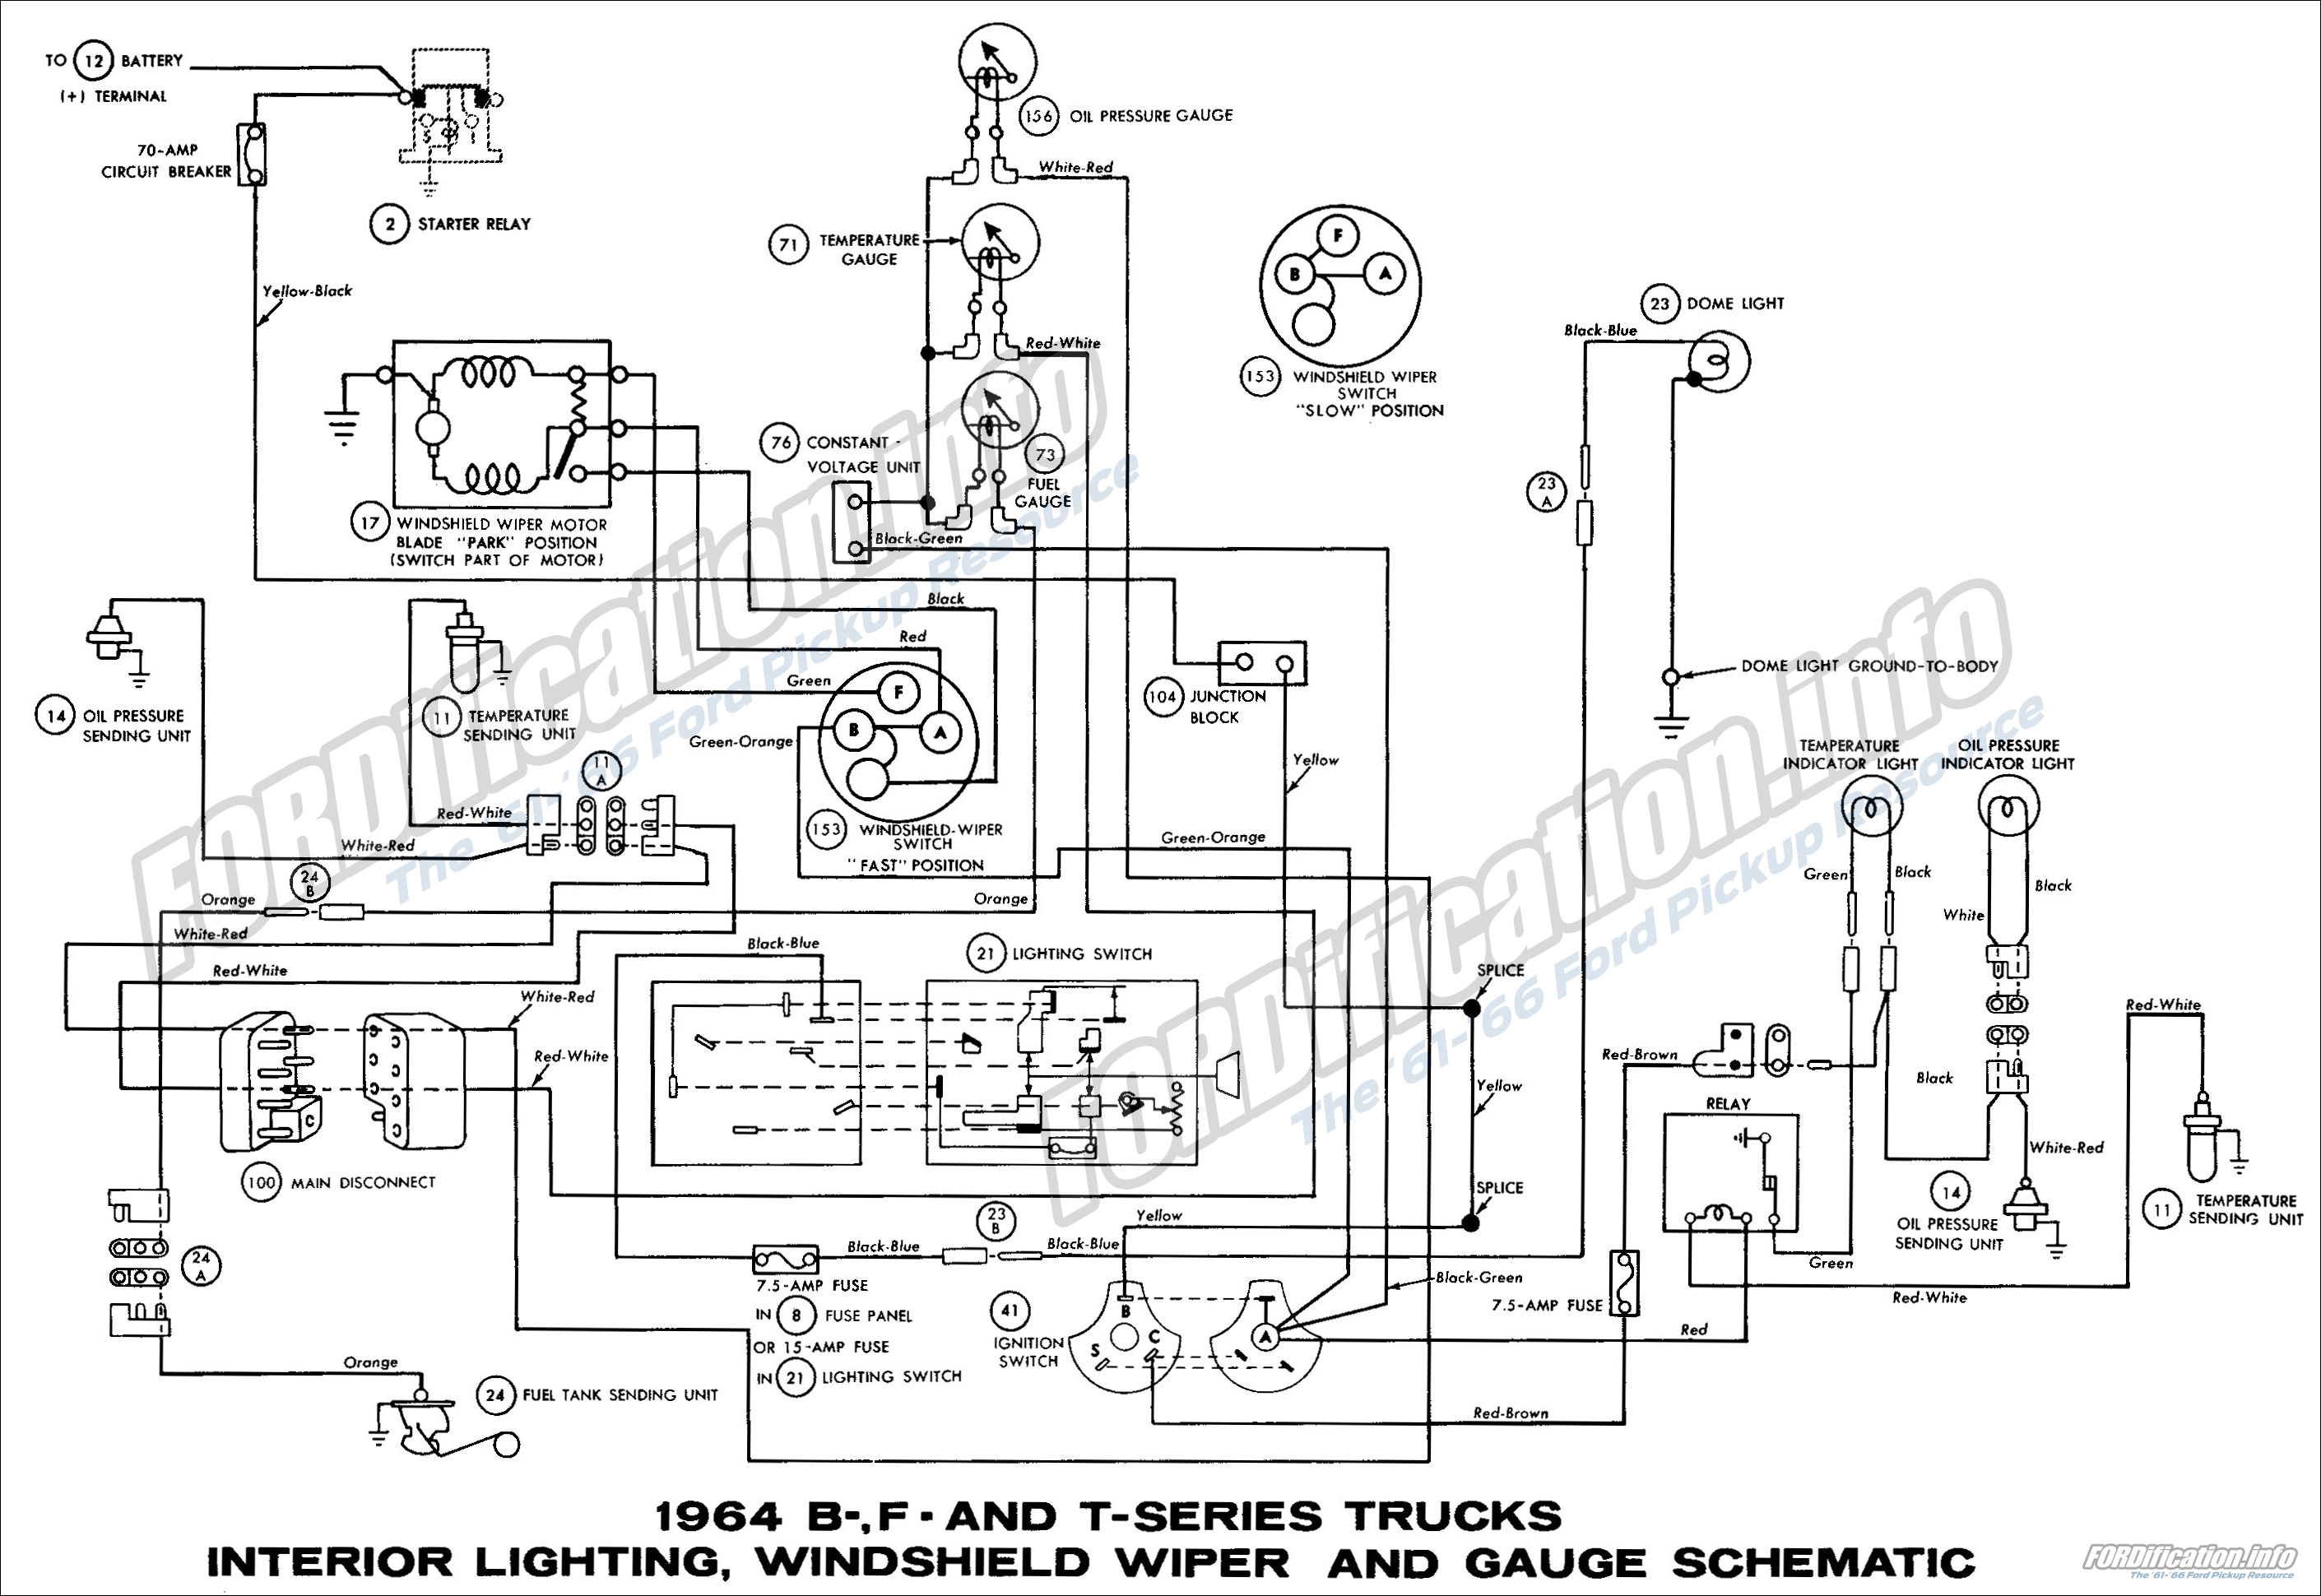 Windshield Wiper Switch Wiring Diagram Ford : 43 Wiring